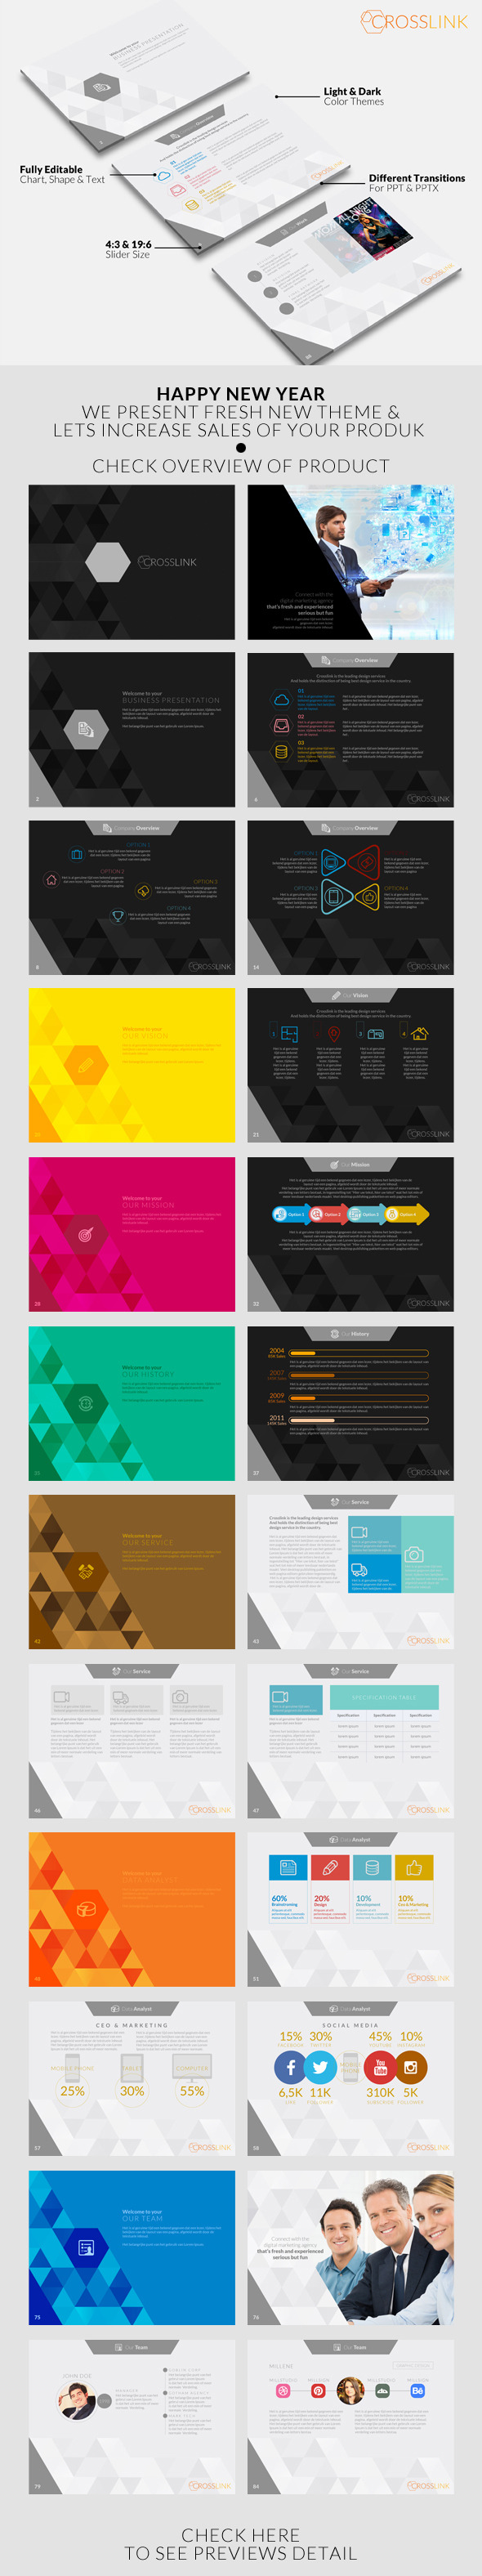 GraphicRiver Crosslink Powerpoint Template 10156347